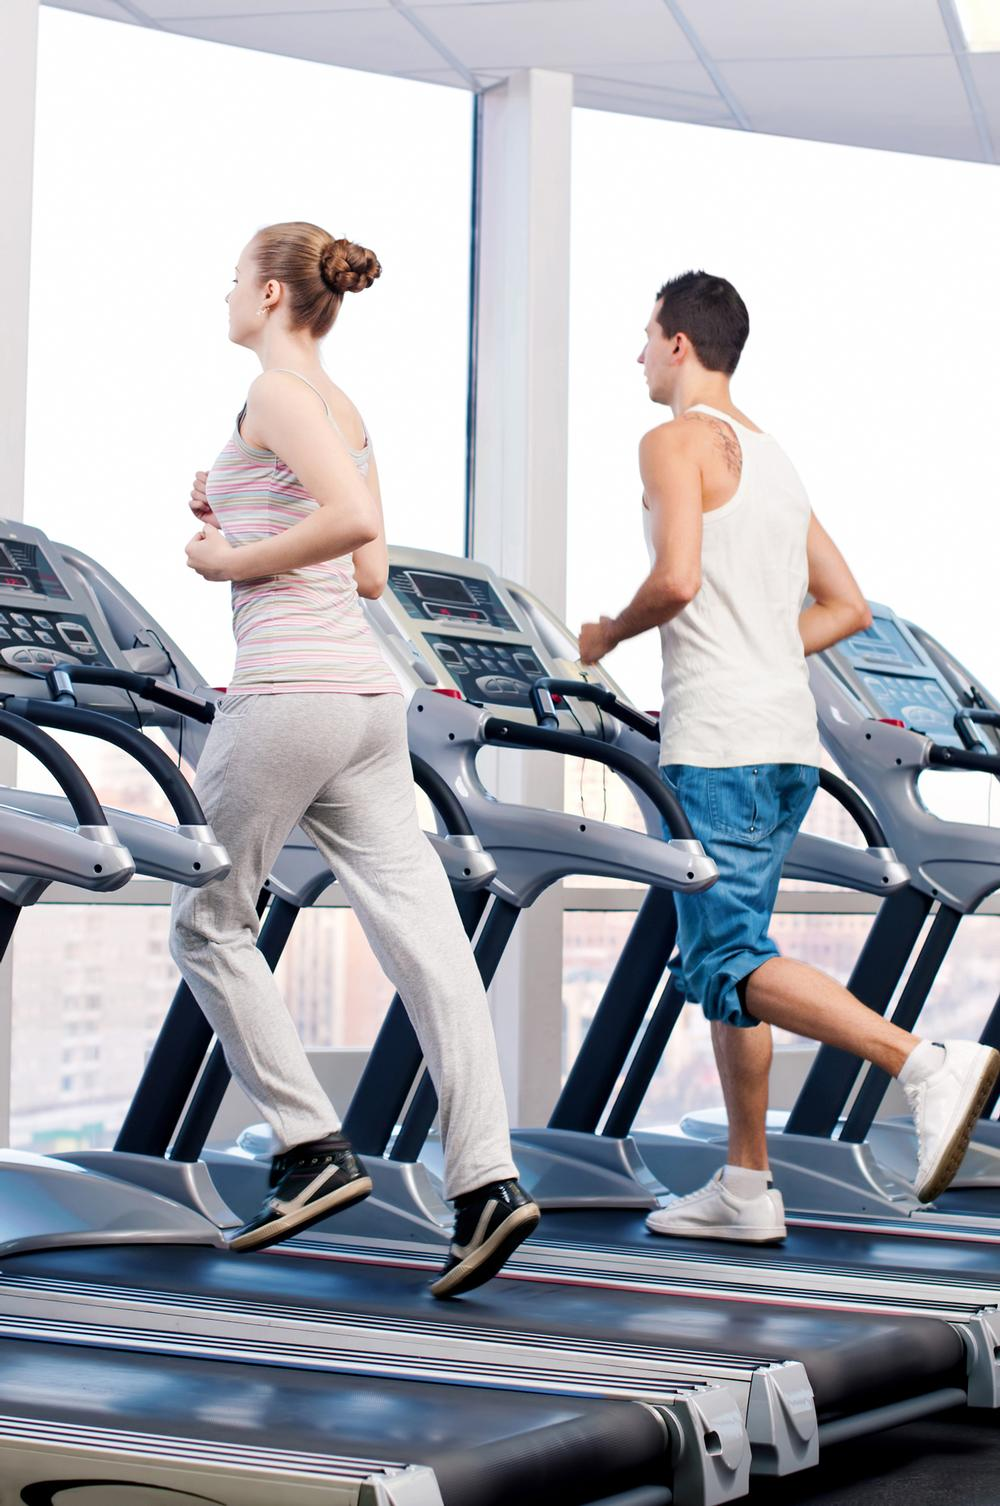 Gyms must recognise the ways in which individuals respond, and programme accordingly / © Aleksandr Markin/shutterstock.com